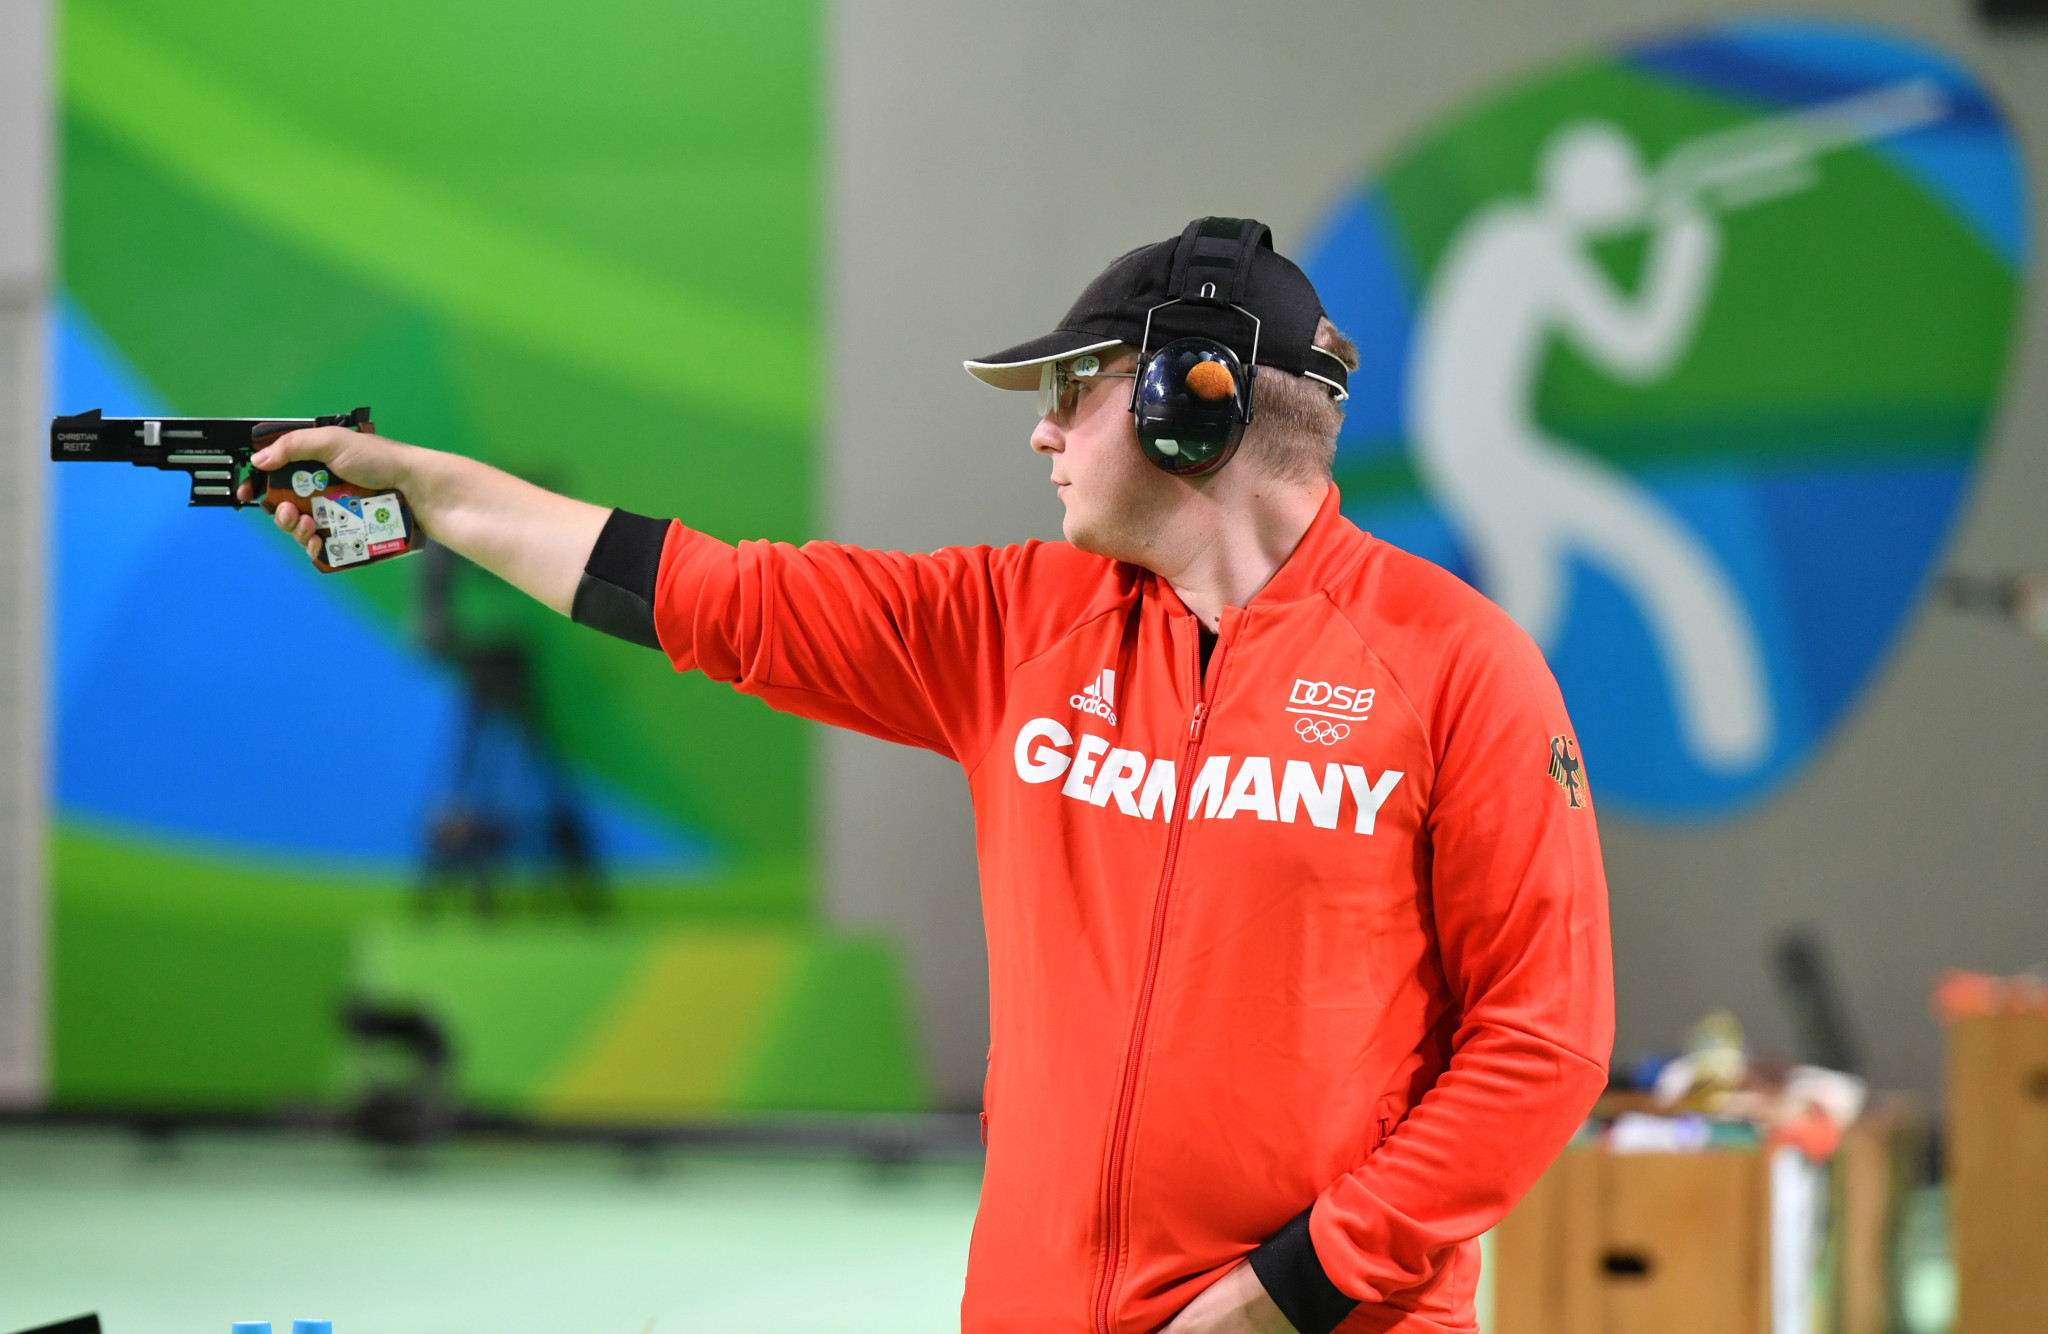 Olympic 25m rapid fire pistol champion Christian Reitz is among the Rio 2016 gold medallists competing this week ©Getty Images